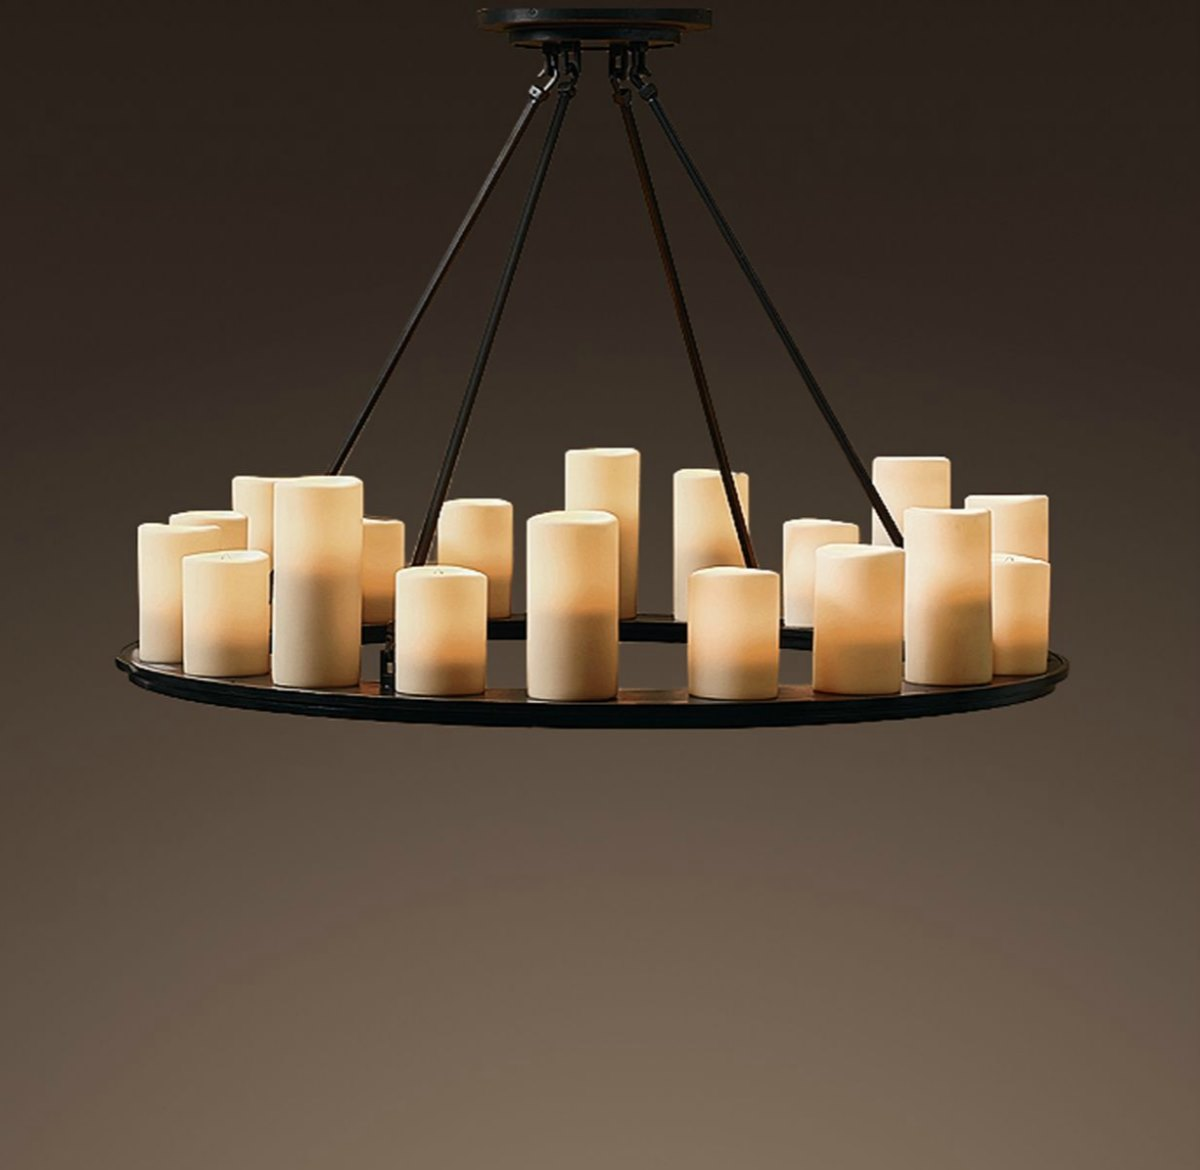 Pillar candle chandelier from Restoration Hardware